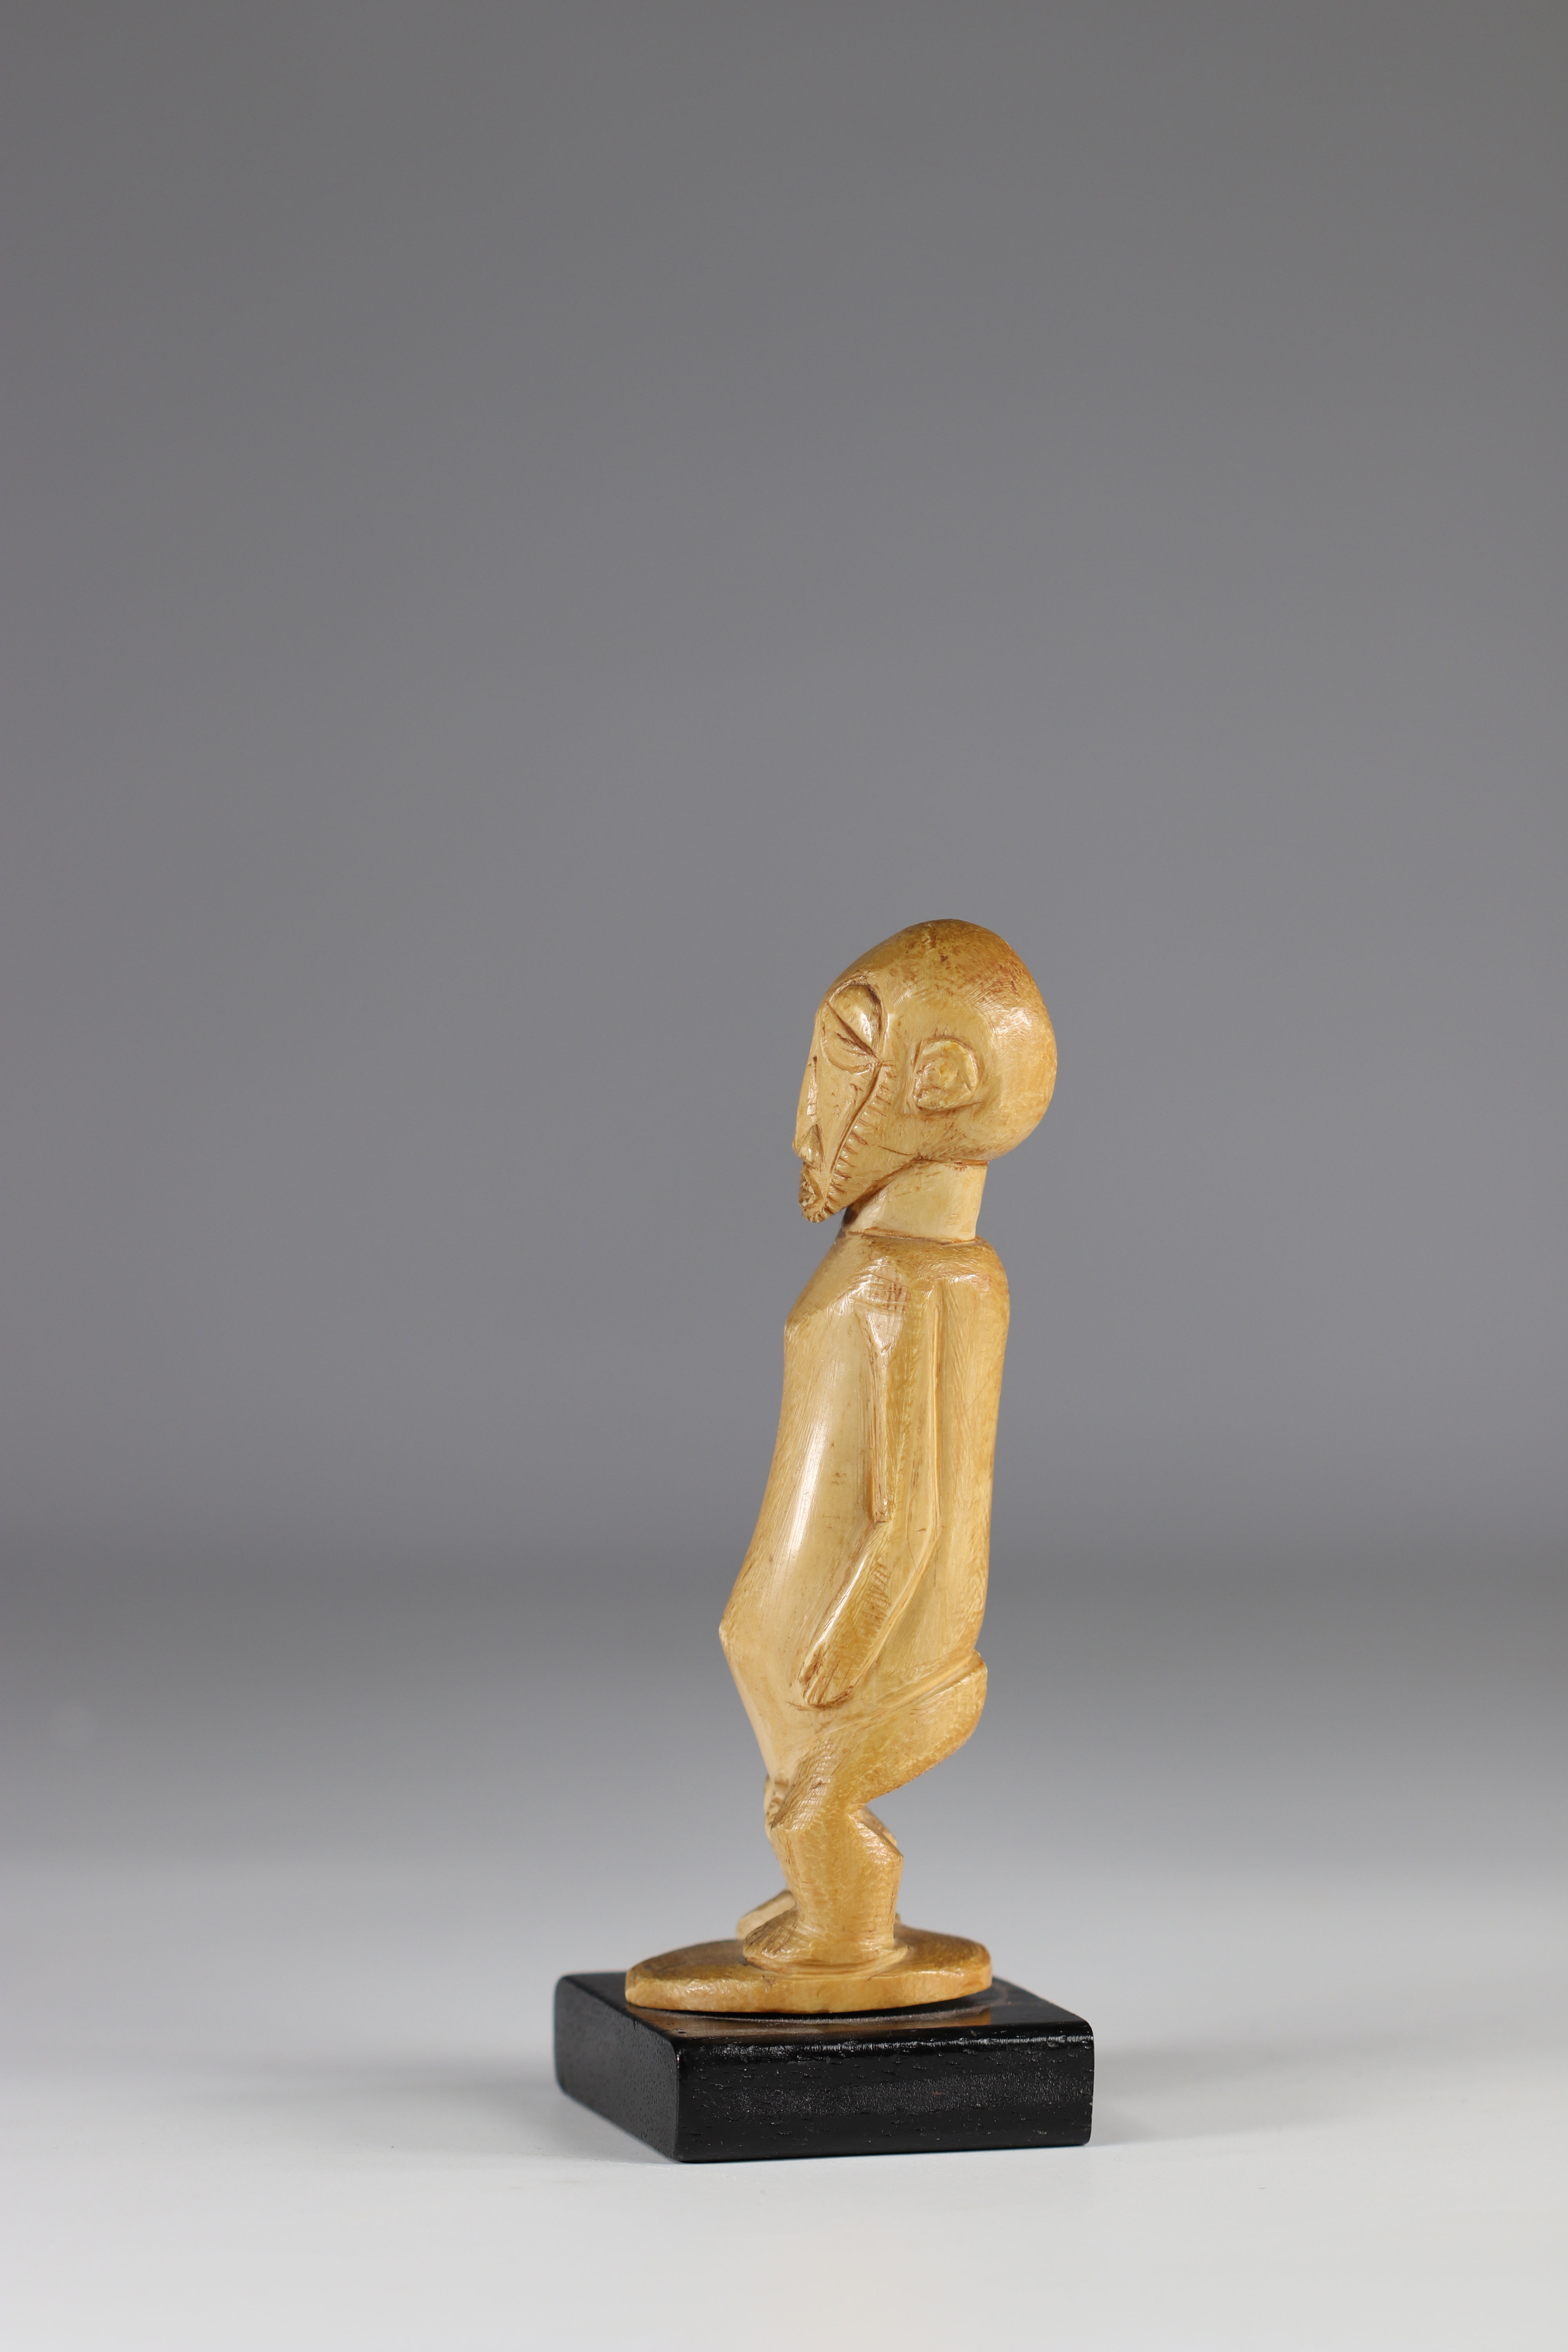 Boyo statuette - ivory - beautiful patina - coll. private Belgian - early 20th century - DRC - Afric - Image 3 of 4